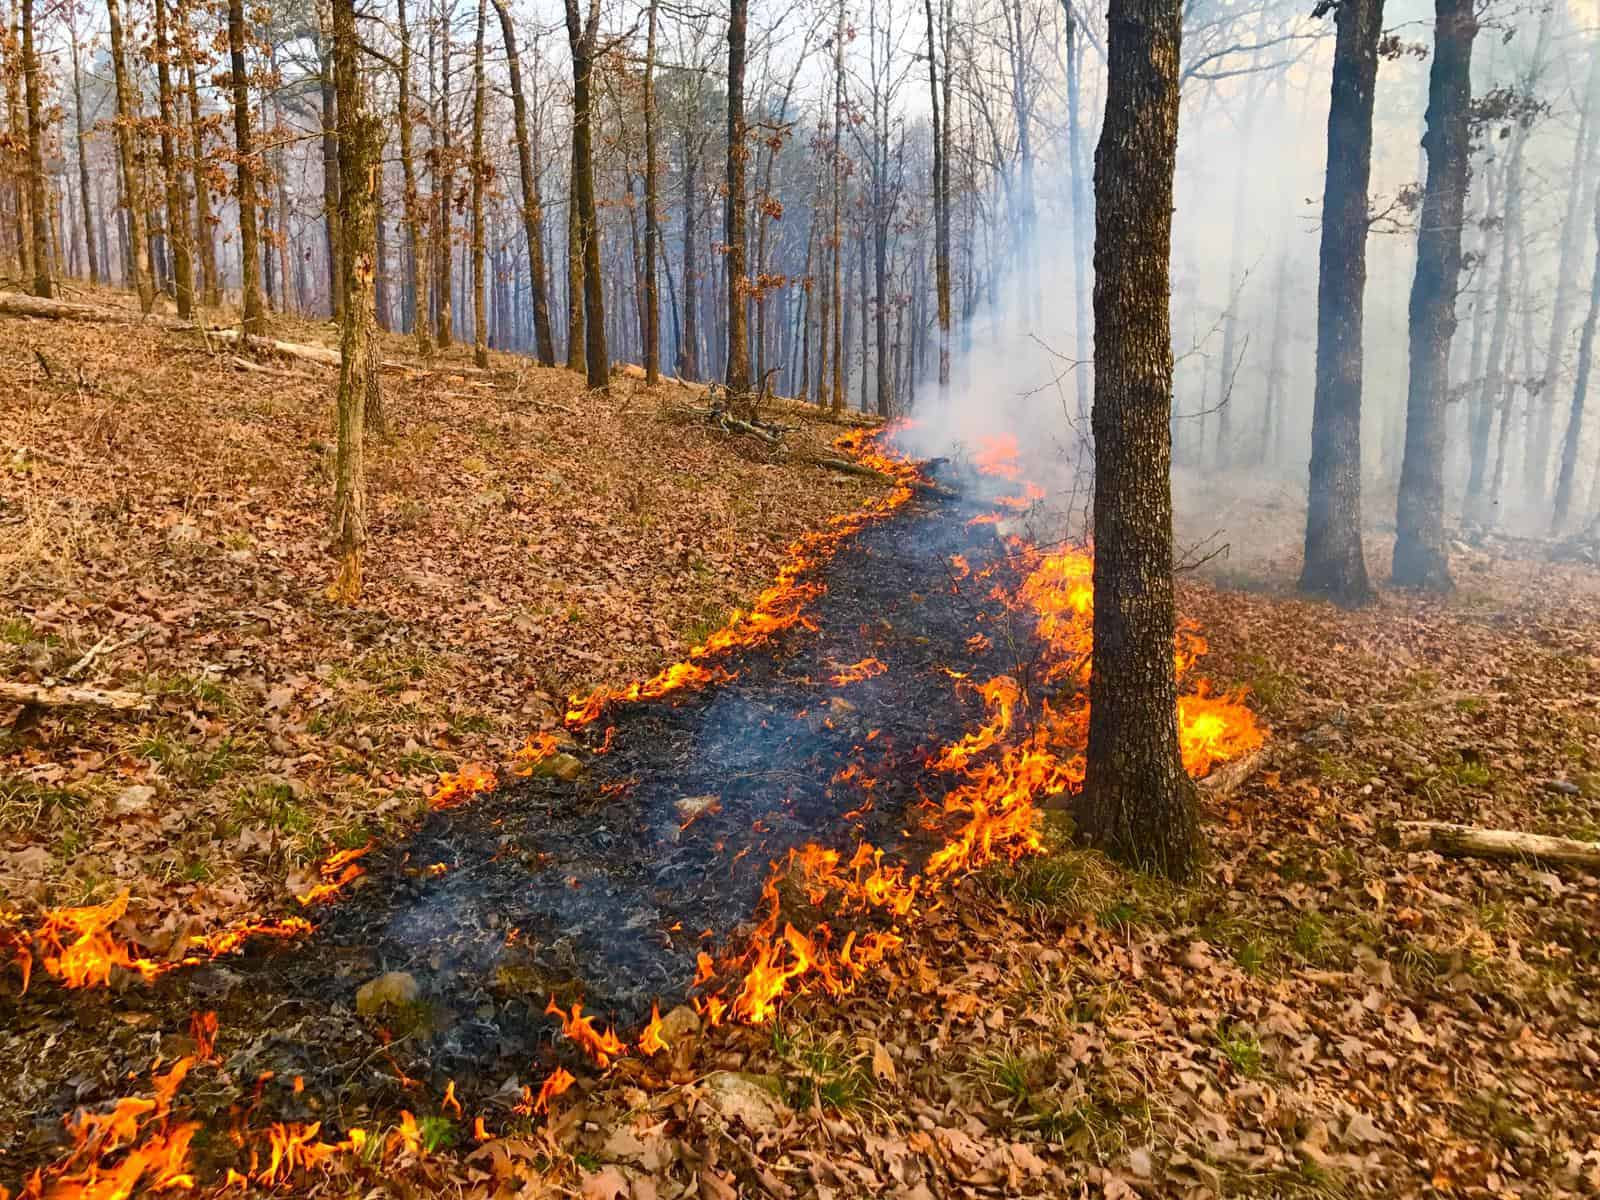 A prescribed fire, burning just above the ground